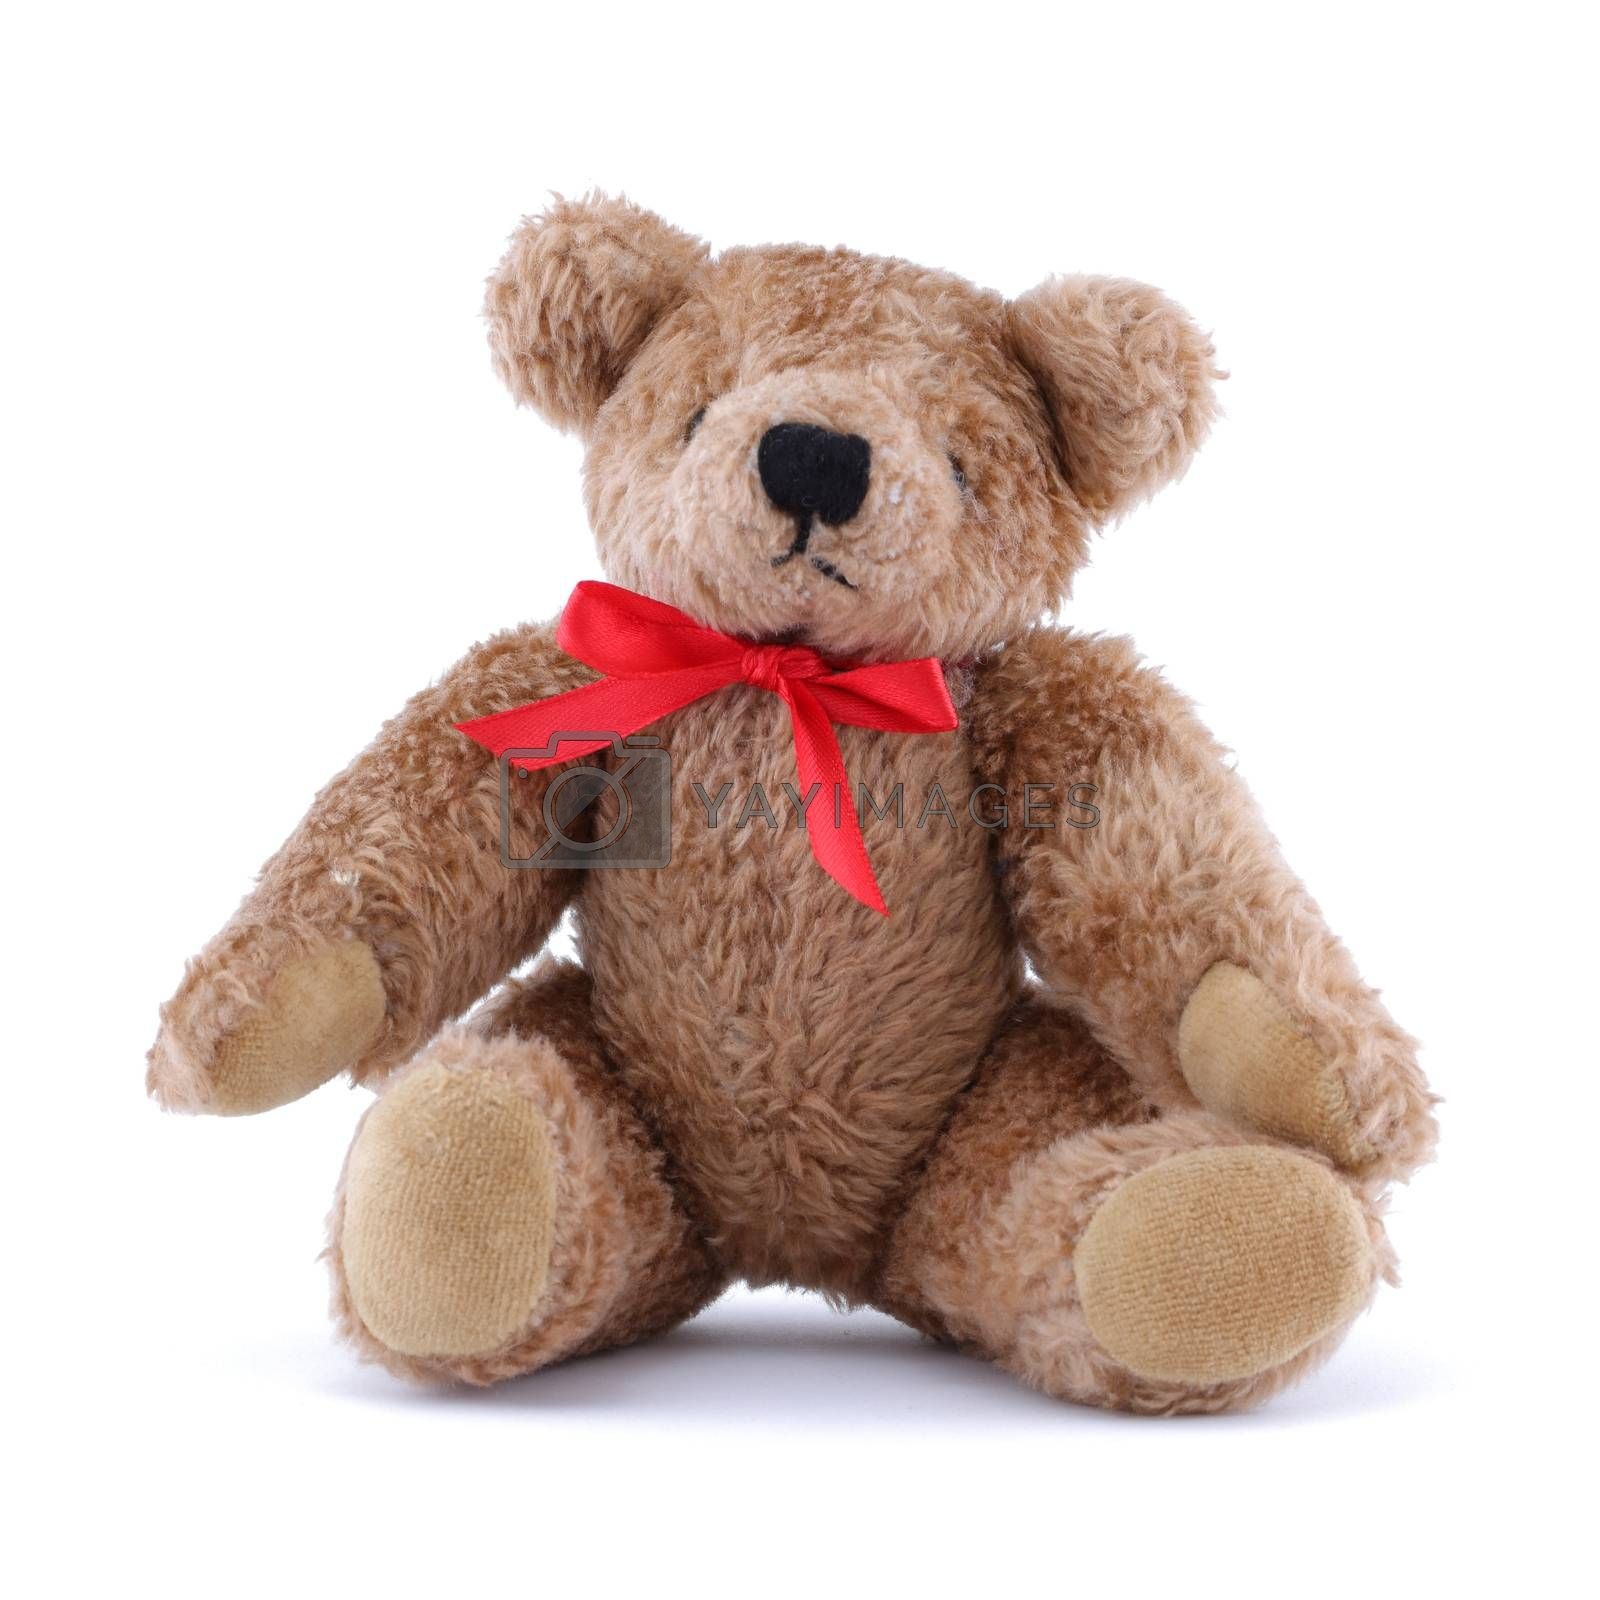 A Teddy bear with red ribbon sitting on white